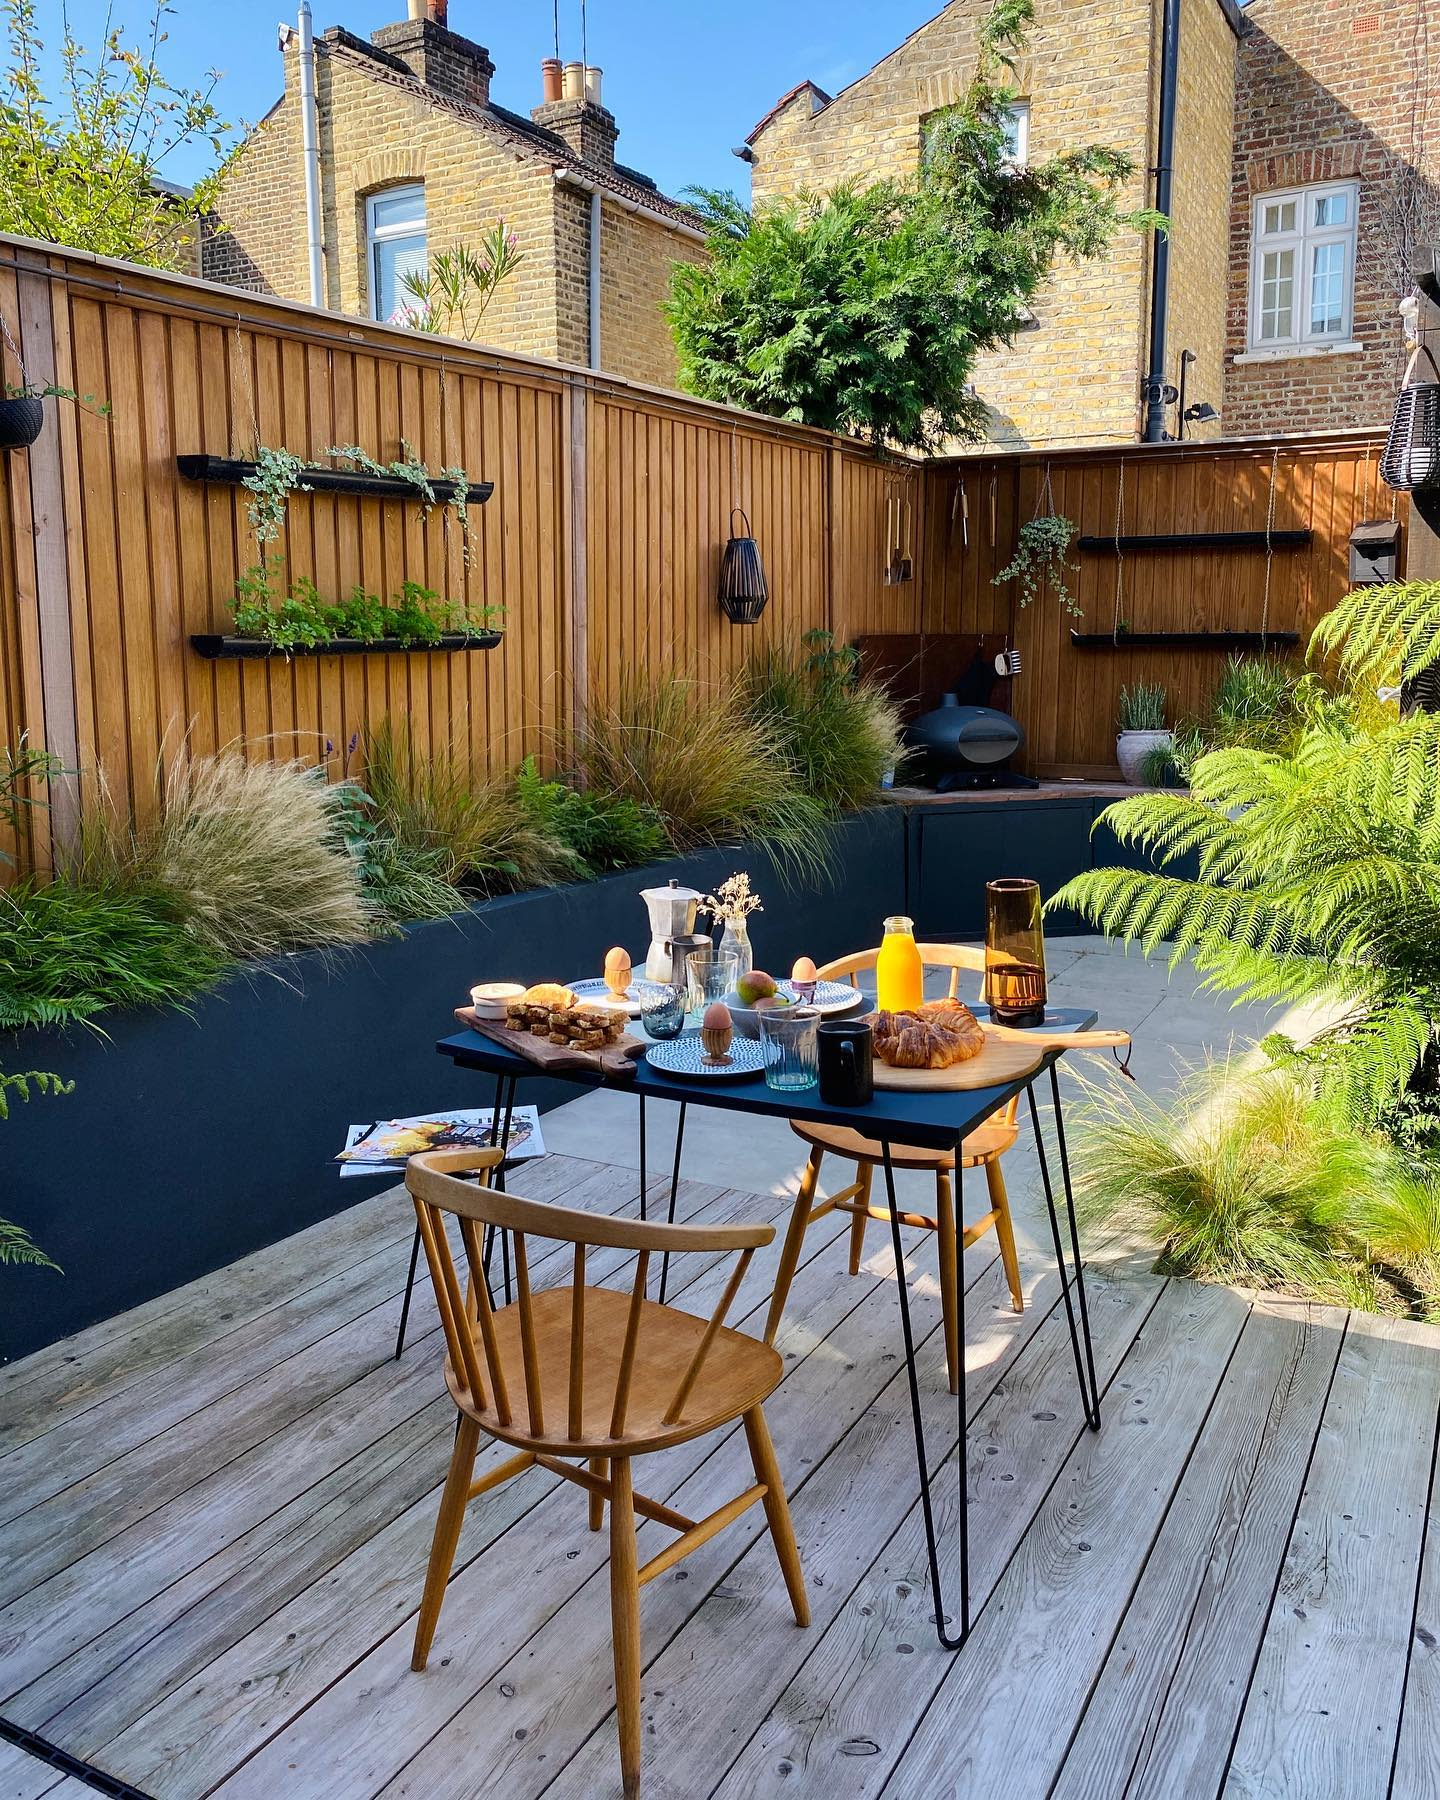 Fence Outdoor Wall Decor Ideas -the_wooden_hill